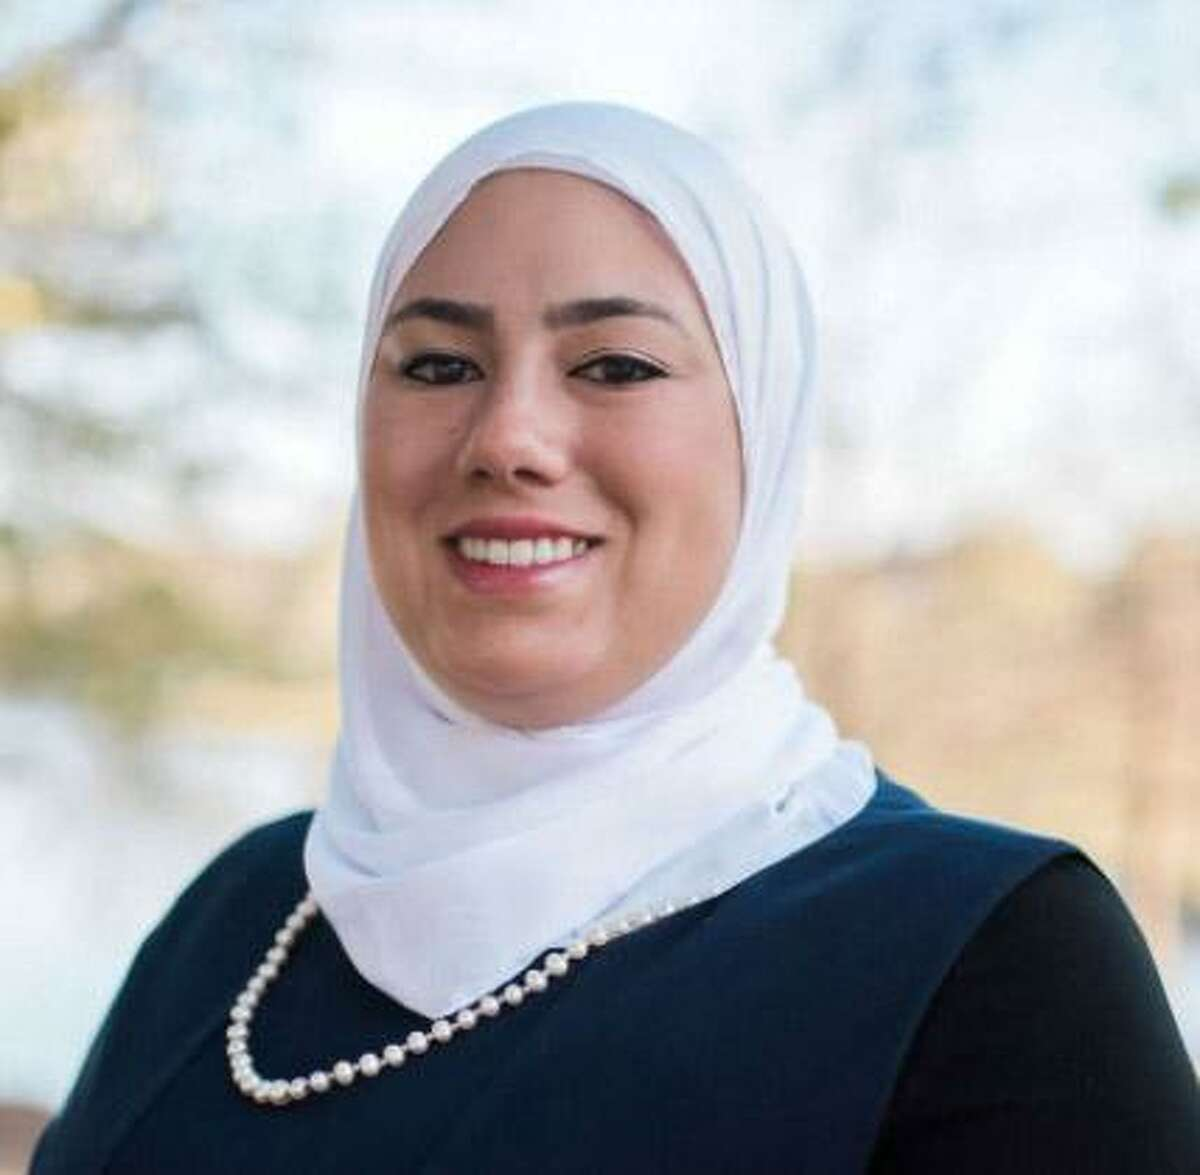 Dalia Kasseb is vying in a June 16, 2018 runoff election for a Pearland City Council seat.